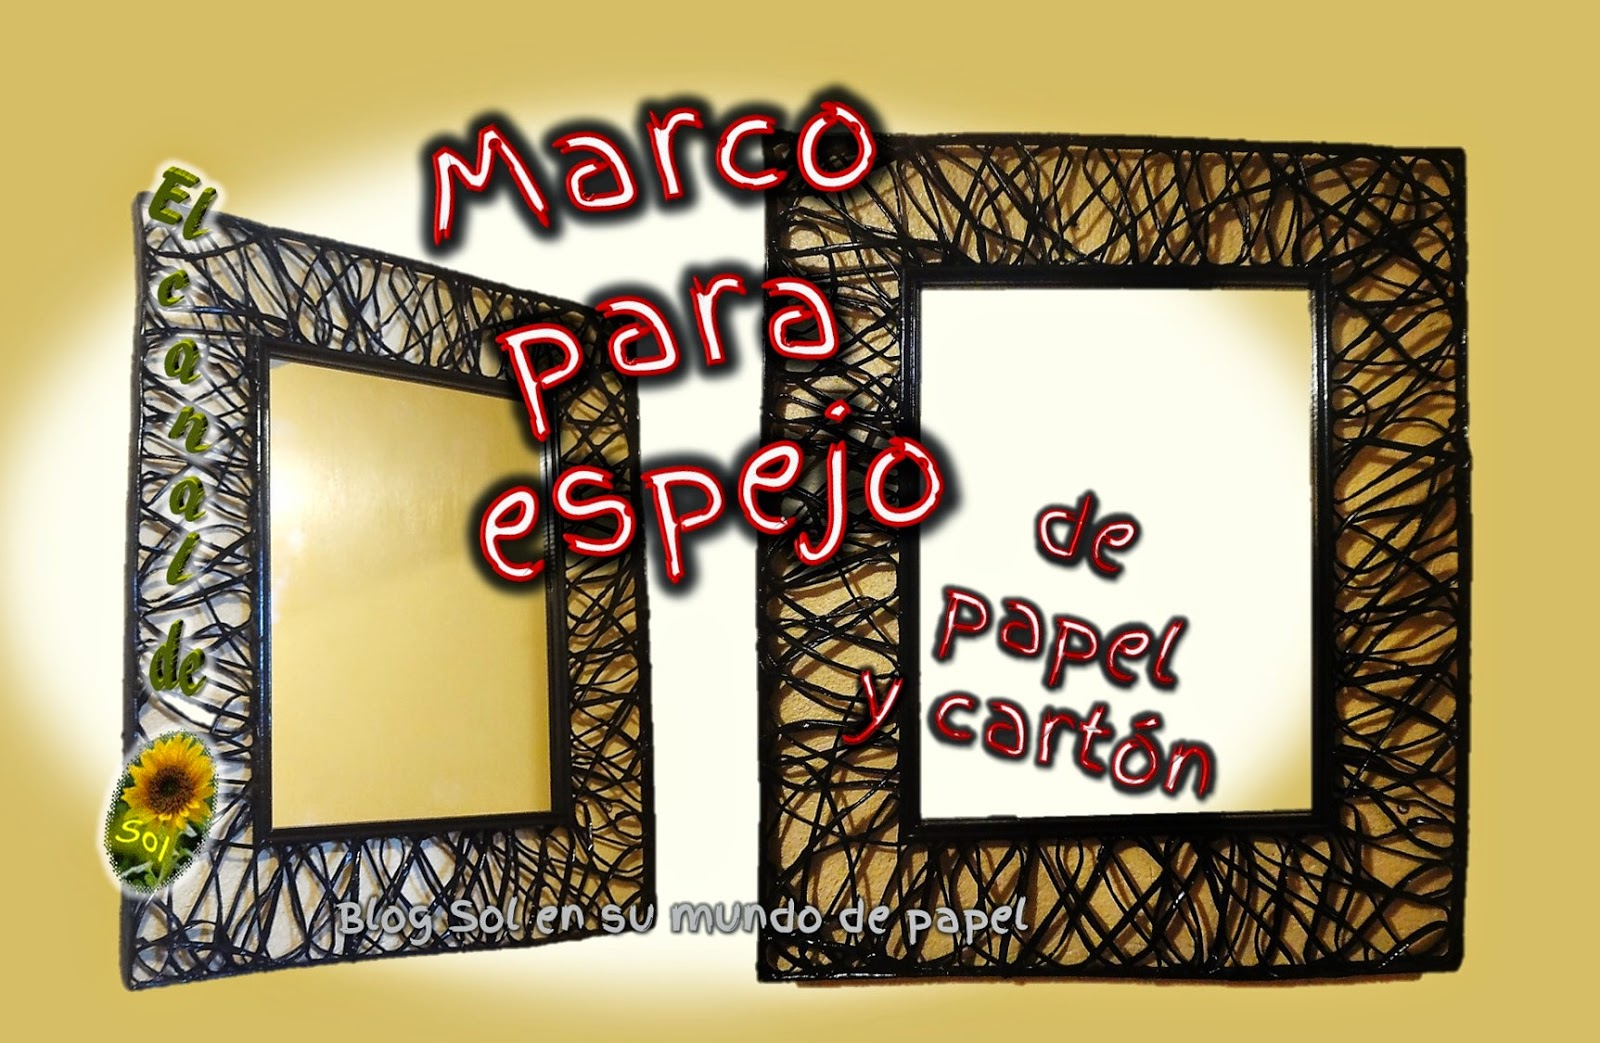 Marco para espejo de papel y cart n for Espejos decorativos sin marco